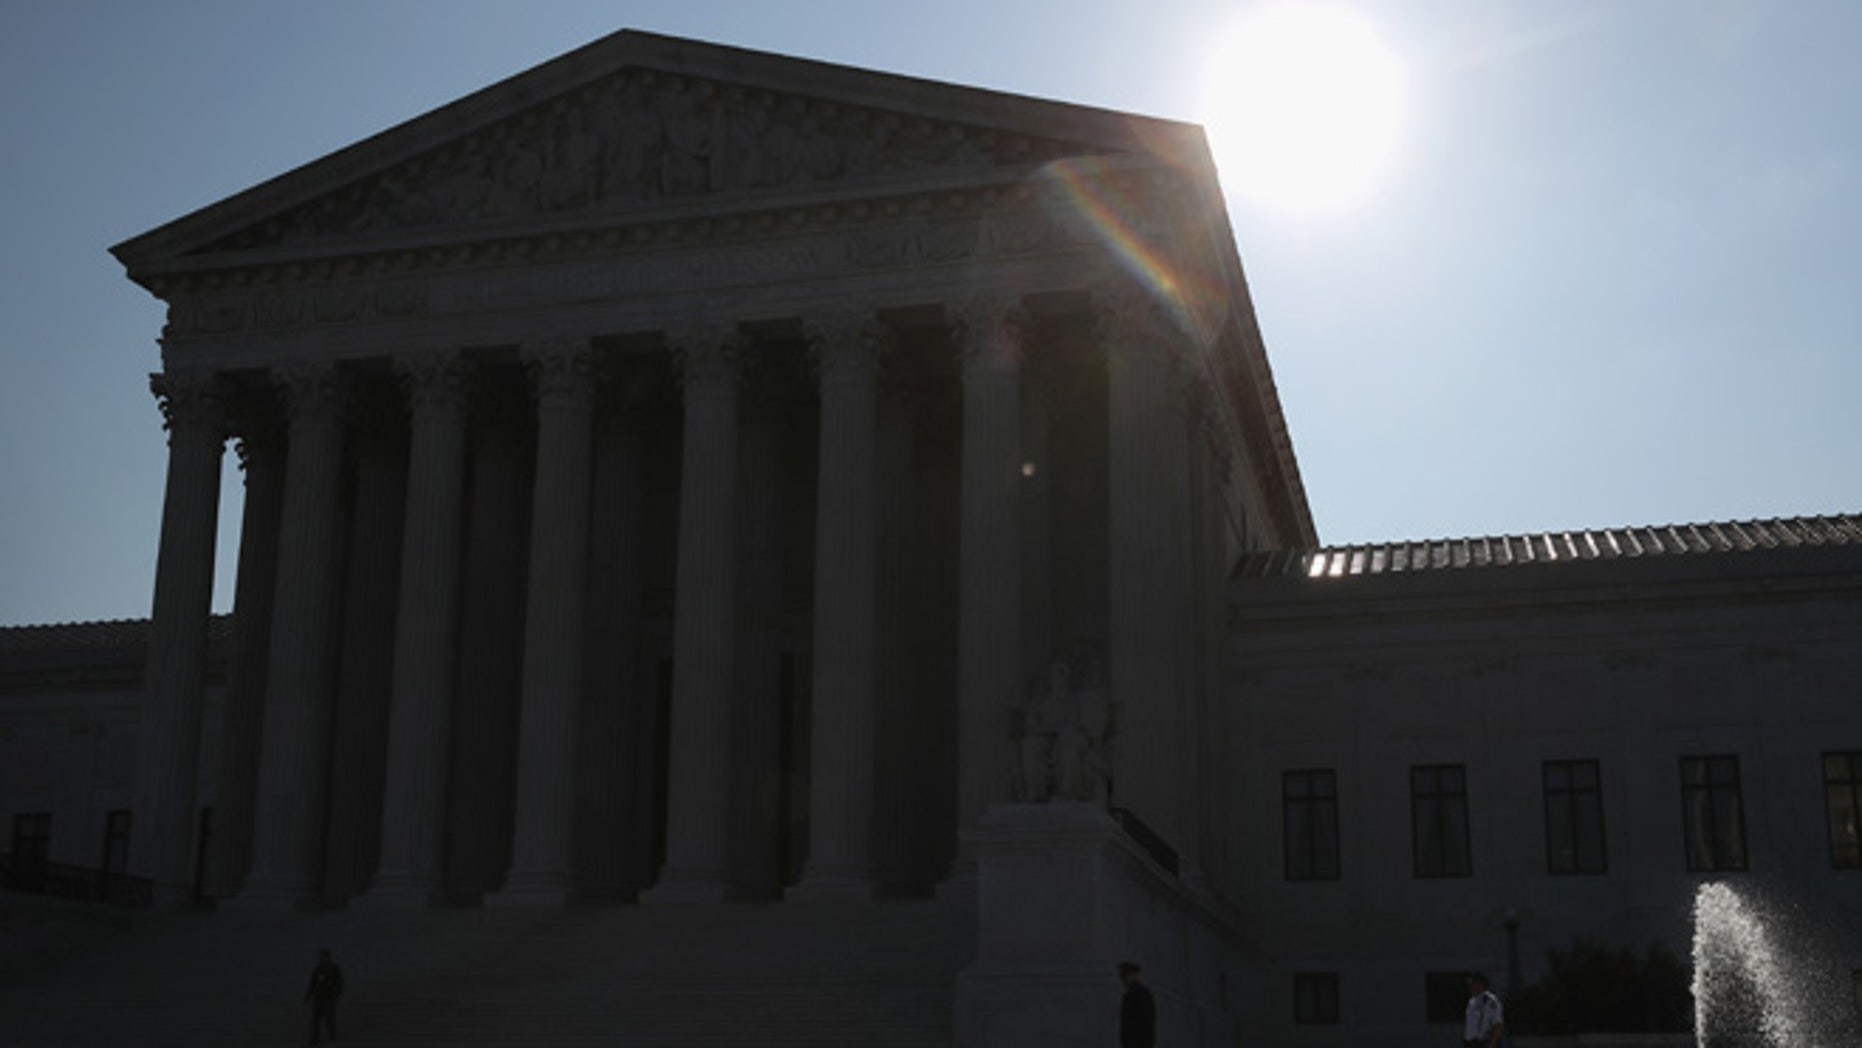 WASHINGTON, DC - MAY 16:  The early morning sun rises behind the U.S. Supreme Court building May 15, 2016 in Washington, DC. Today the high court sent the Affordable Care Act's contraceptive mandate case back down to the lower courts for opposing parties to work out a compromise.  (Photo by Mark Wilson/Getty Images)